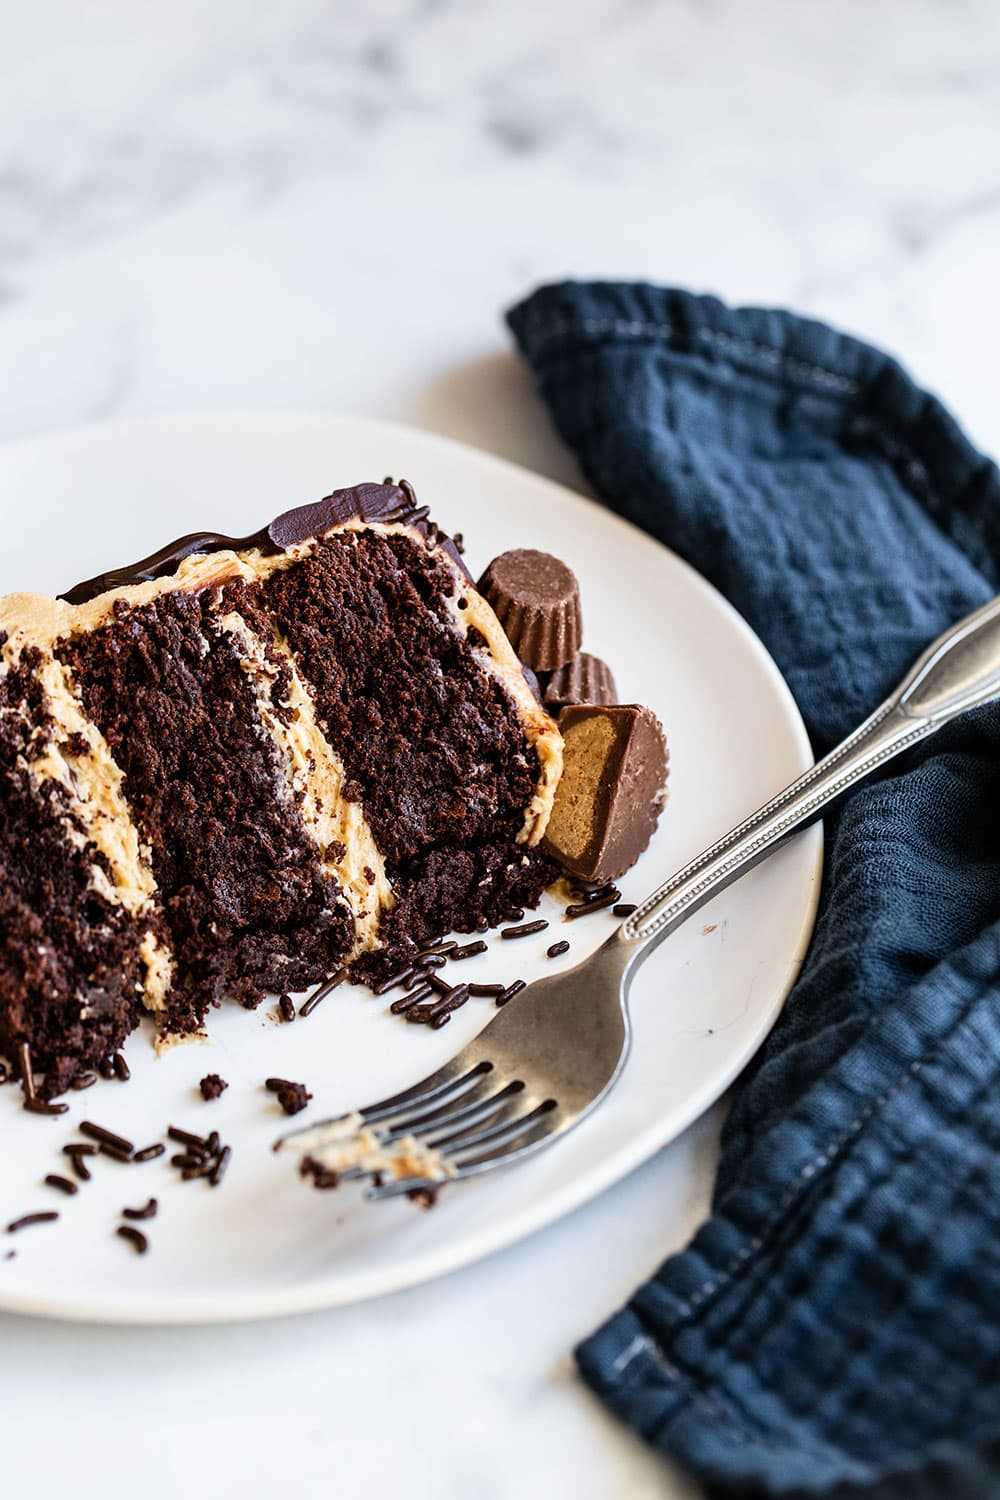 Slice of chocolate brownie cake with peanut butter buttercream